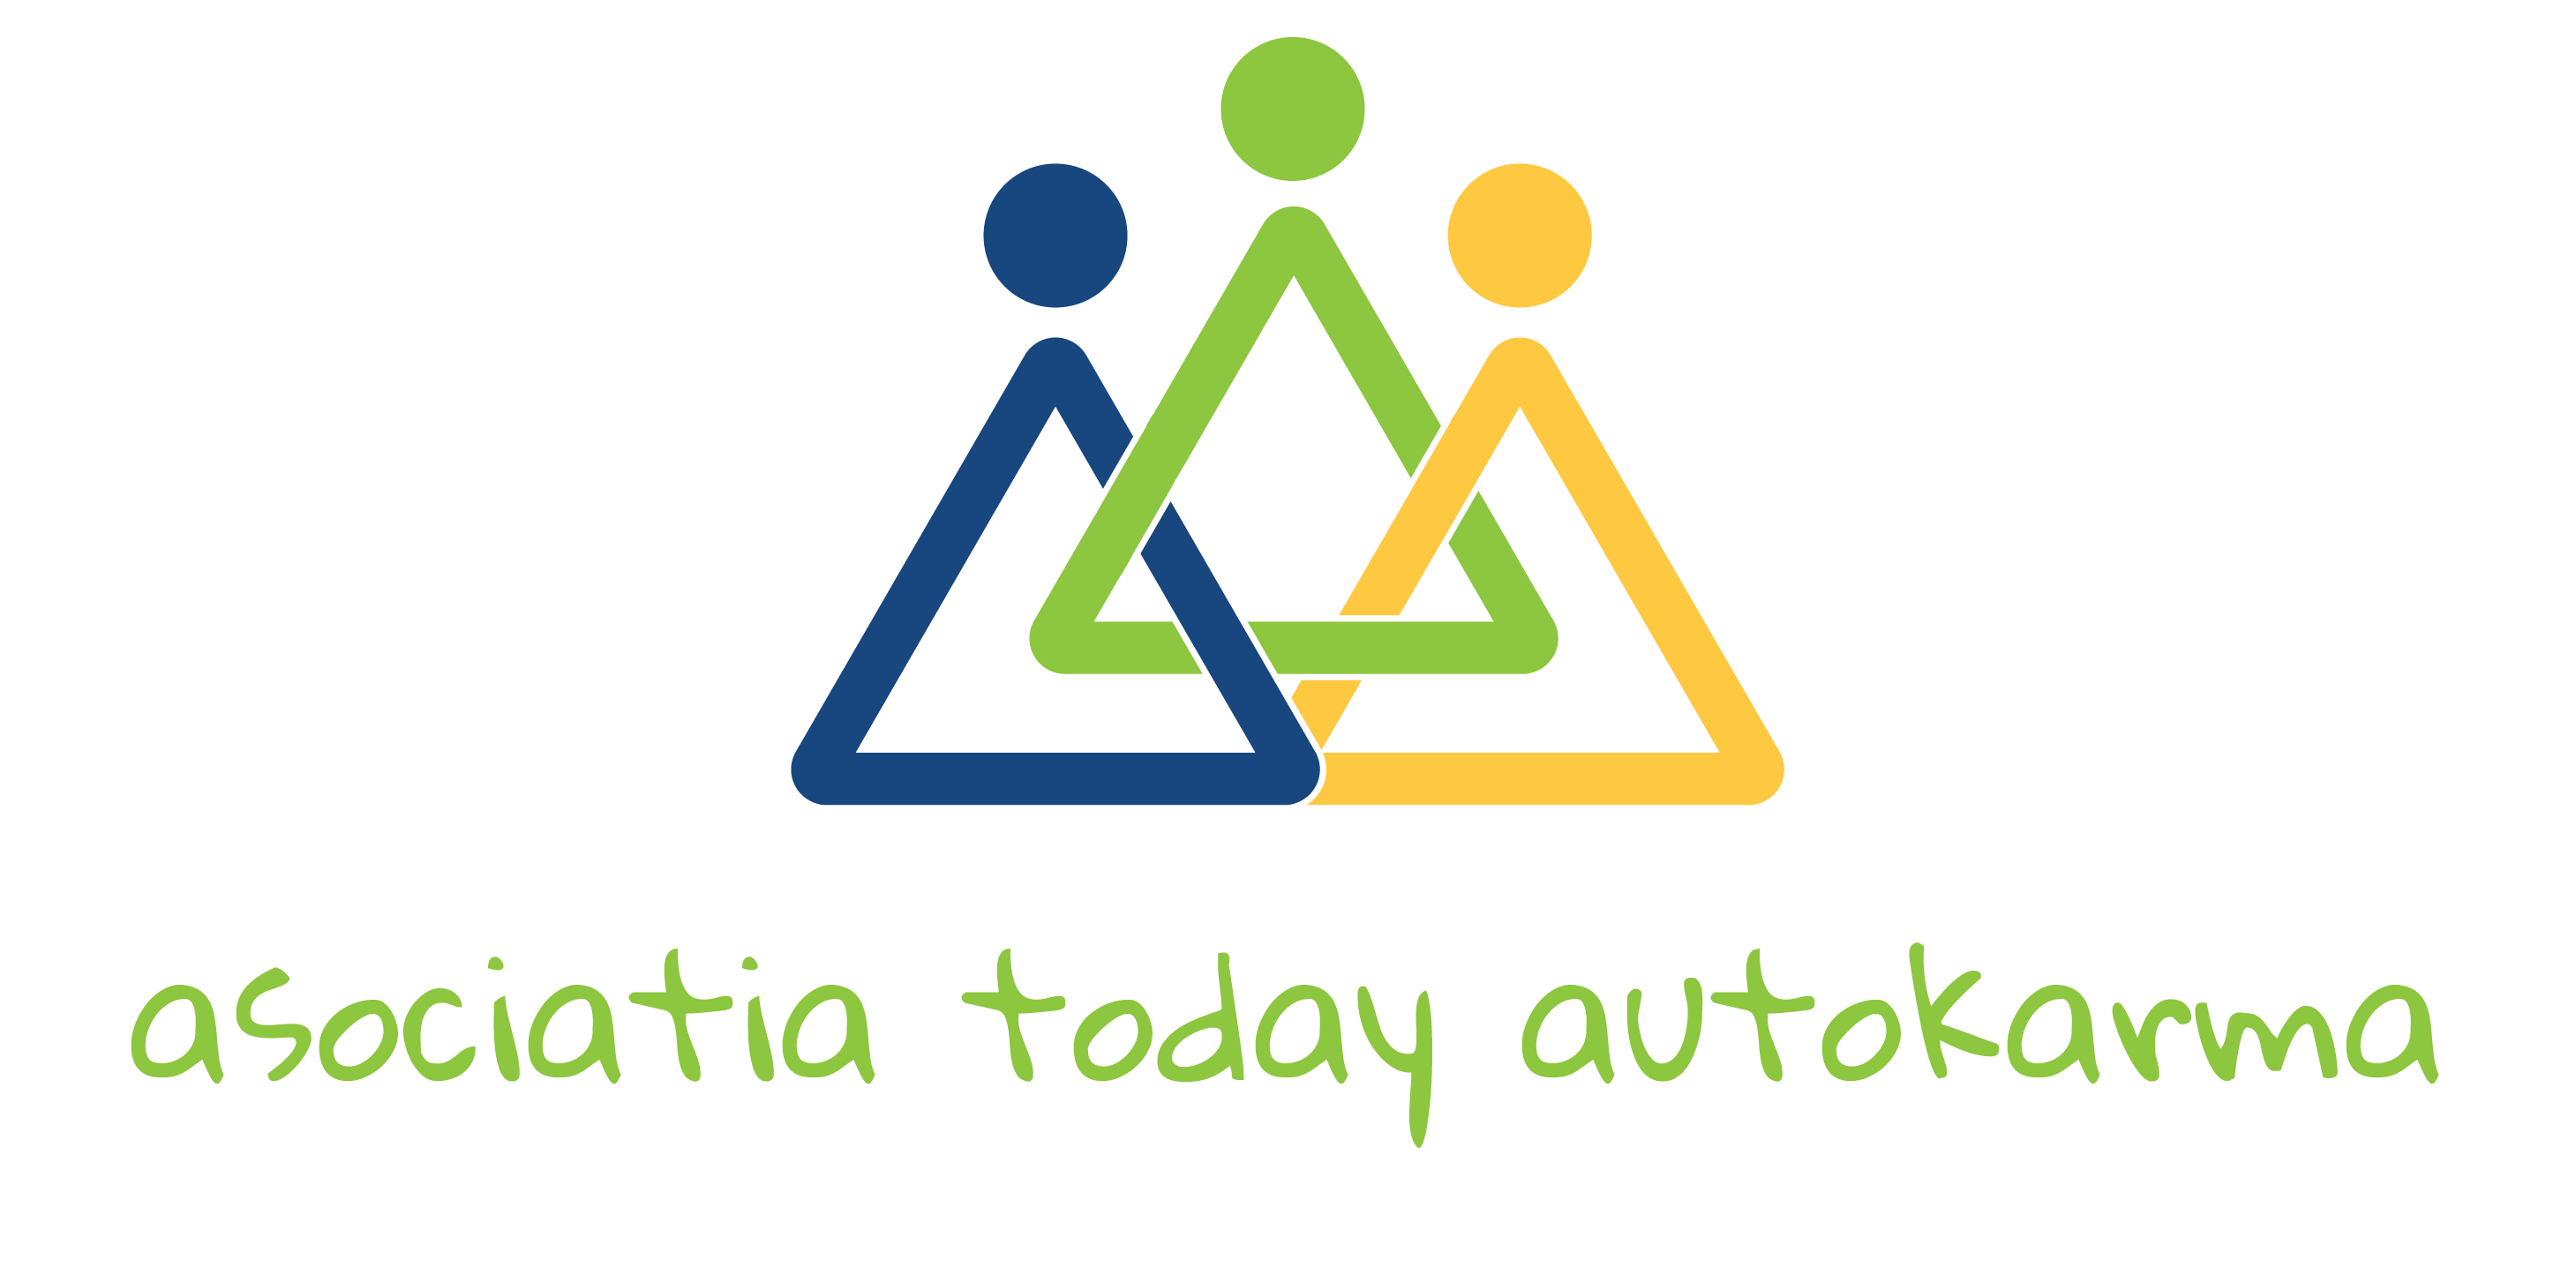 Today Autokarma